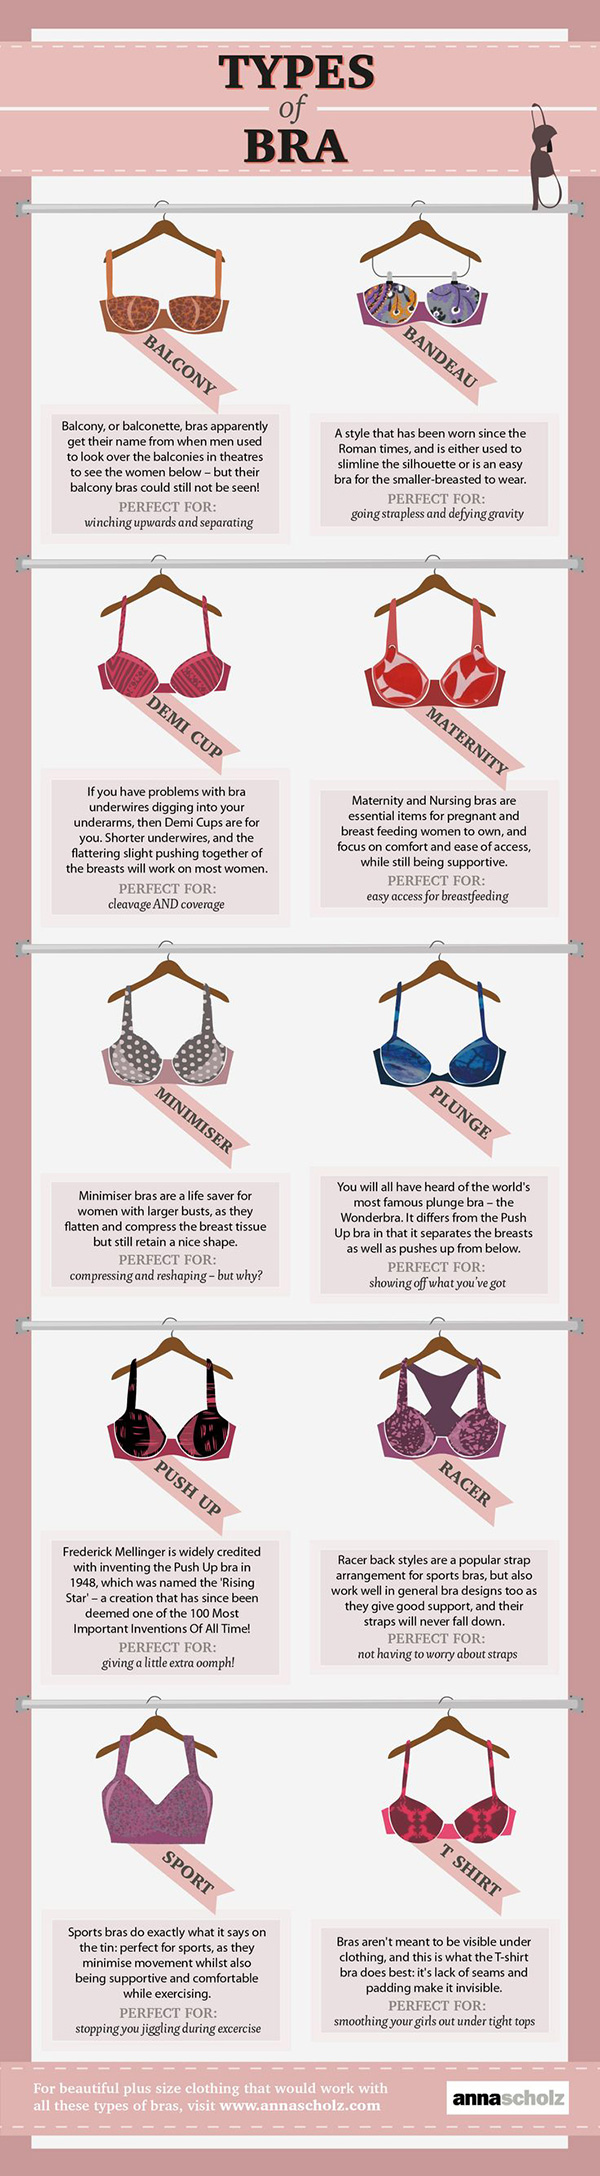 e527abfb8 Pregnancy Bra Archives - Infographic Facts